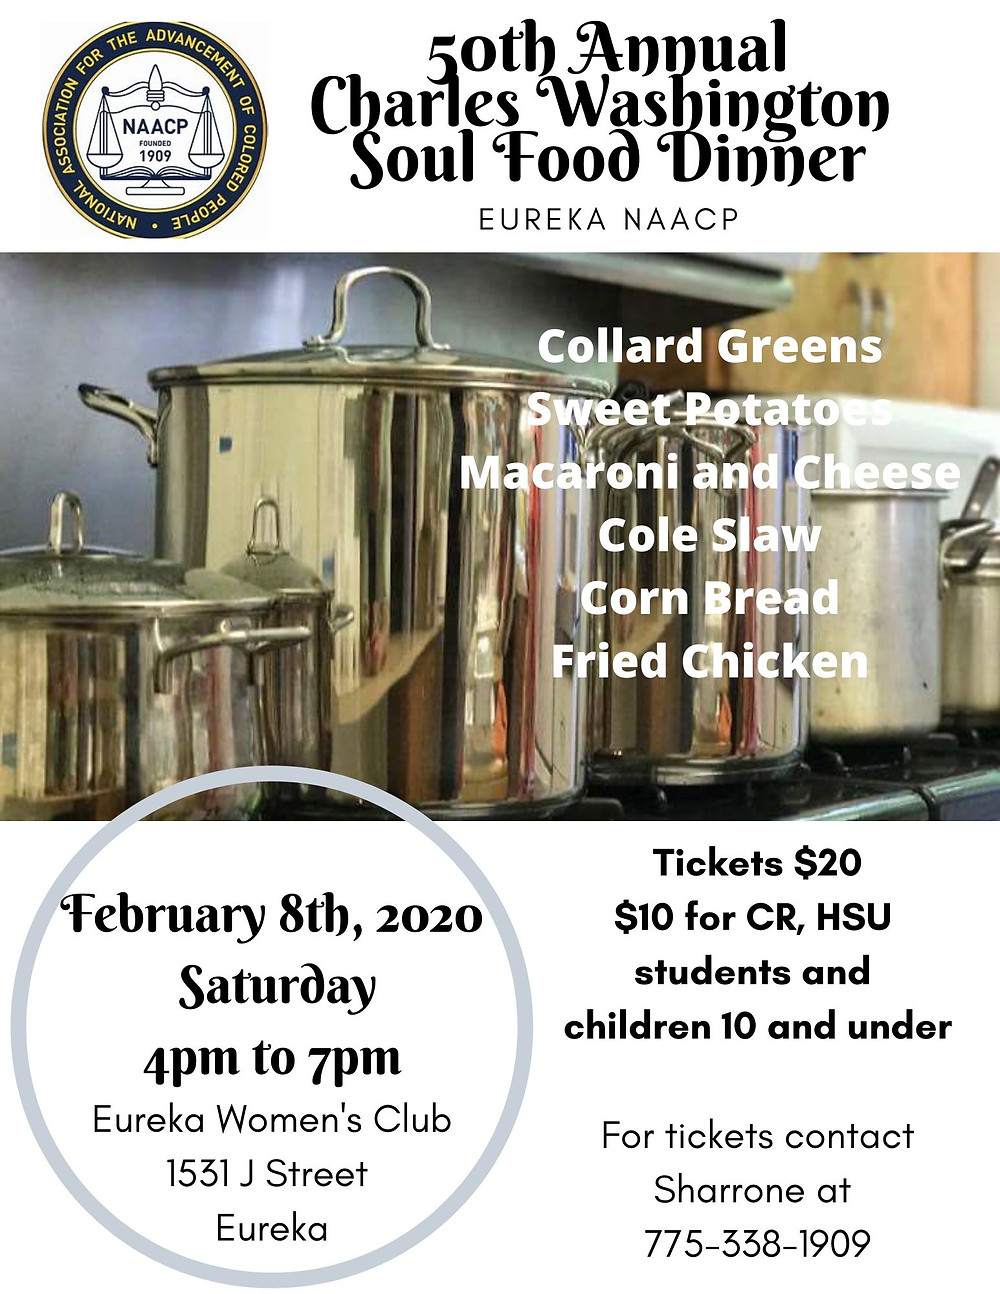 50th Annual Charles Washington Soul Food Dinner February 8th 4pm to 7pm at the Eureka Women's Club